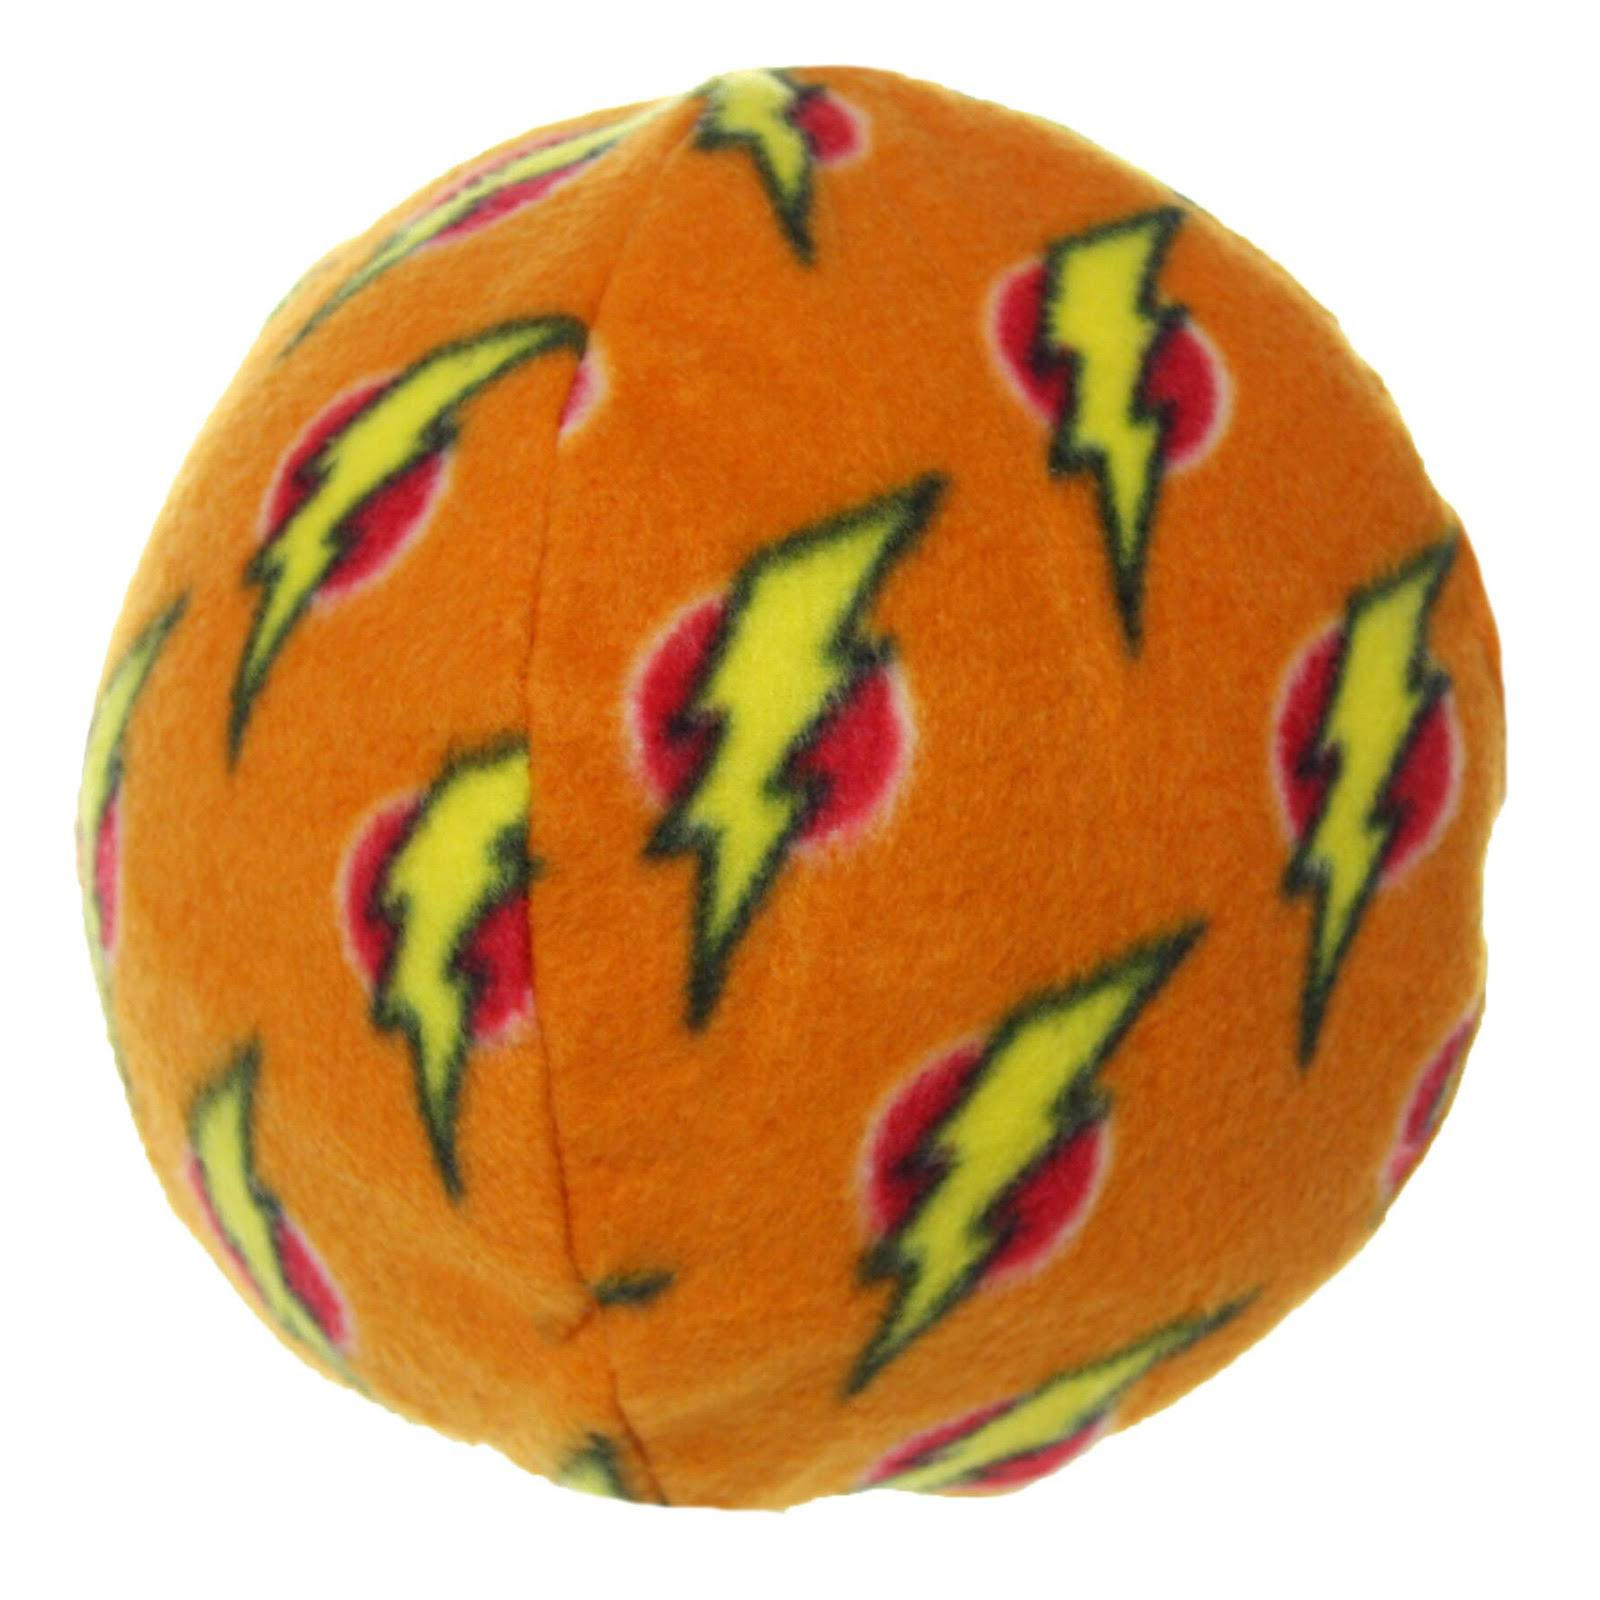 Vip Products Mighty Balls Dog Toy - Large, Orange